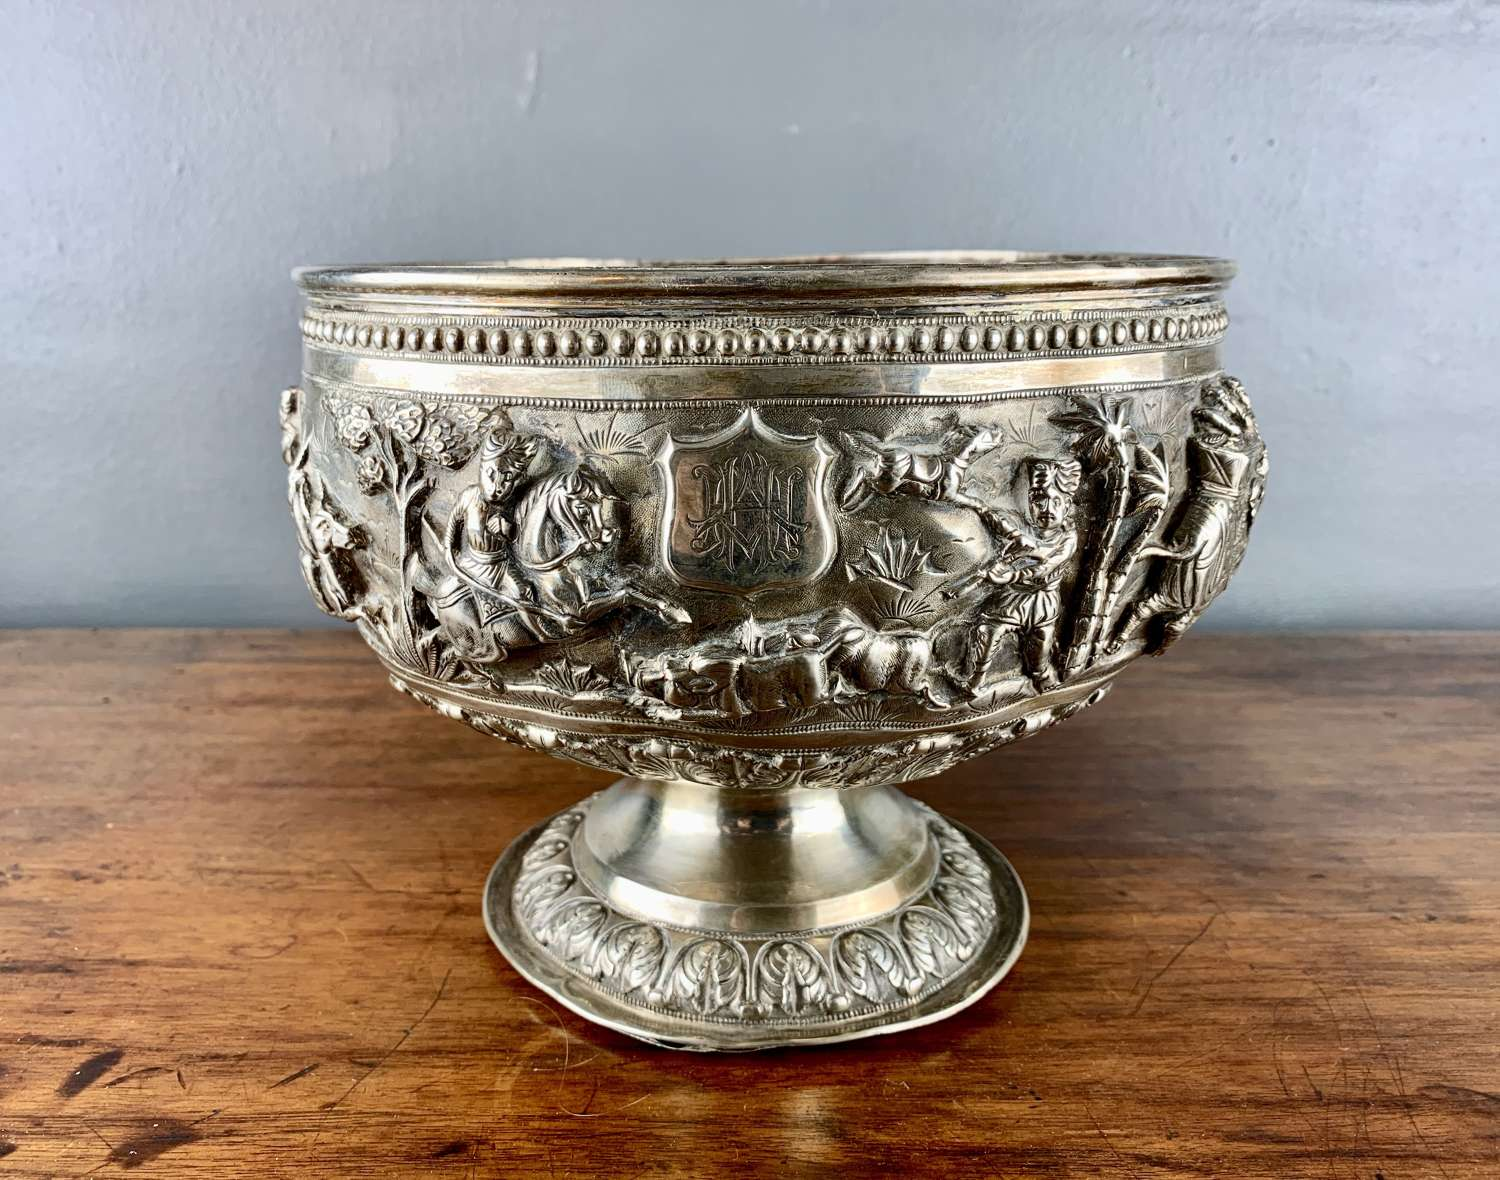 Antique Silver Repousse Silver Rose Bowl with a Hunting Scene